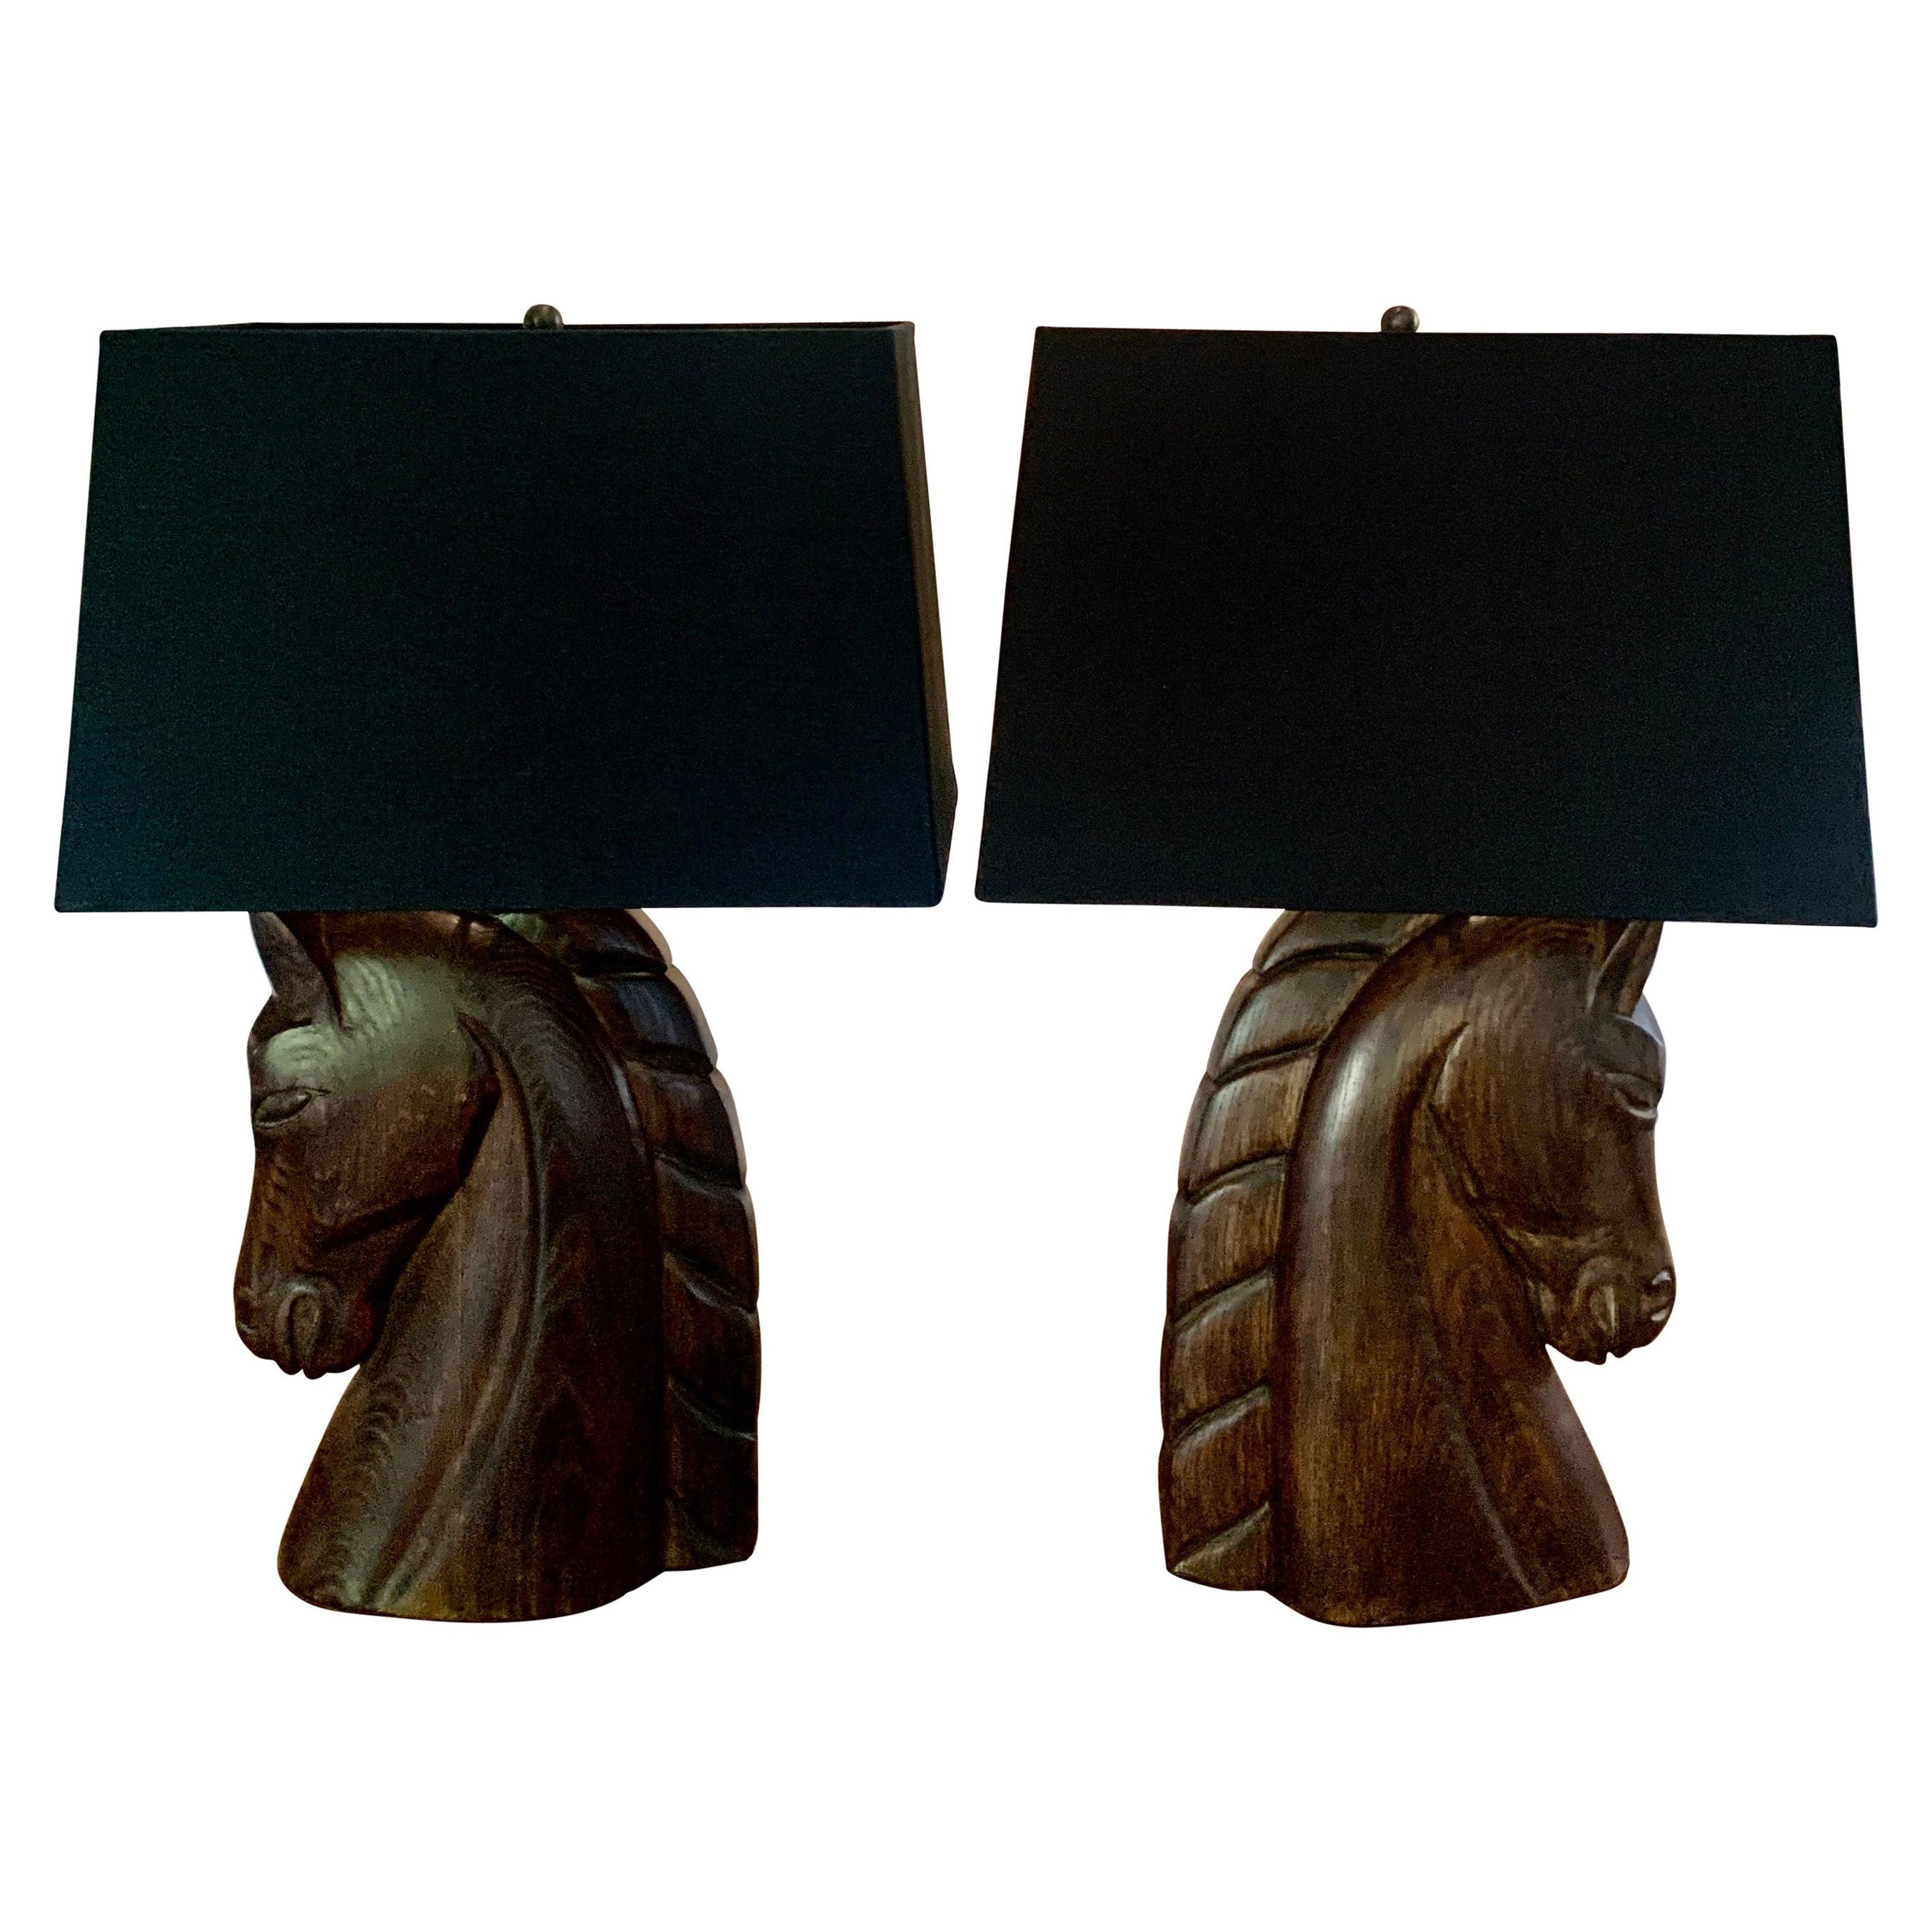 Pair of William Billy Haines Carved  Wooden Horse Head Lamps with Shades